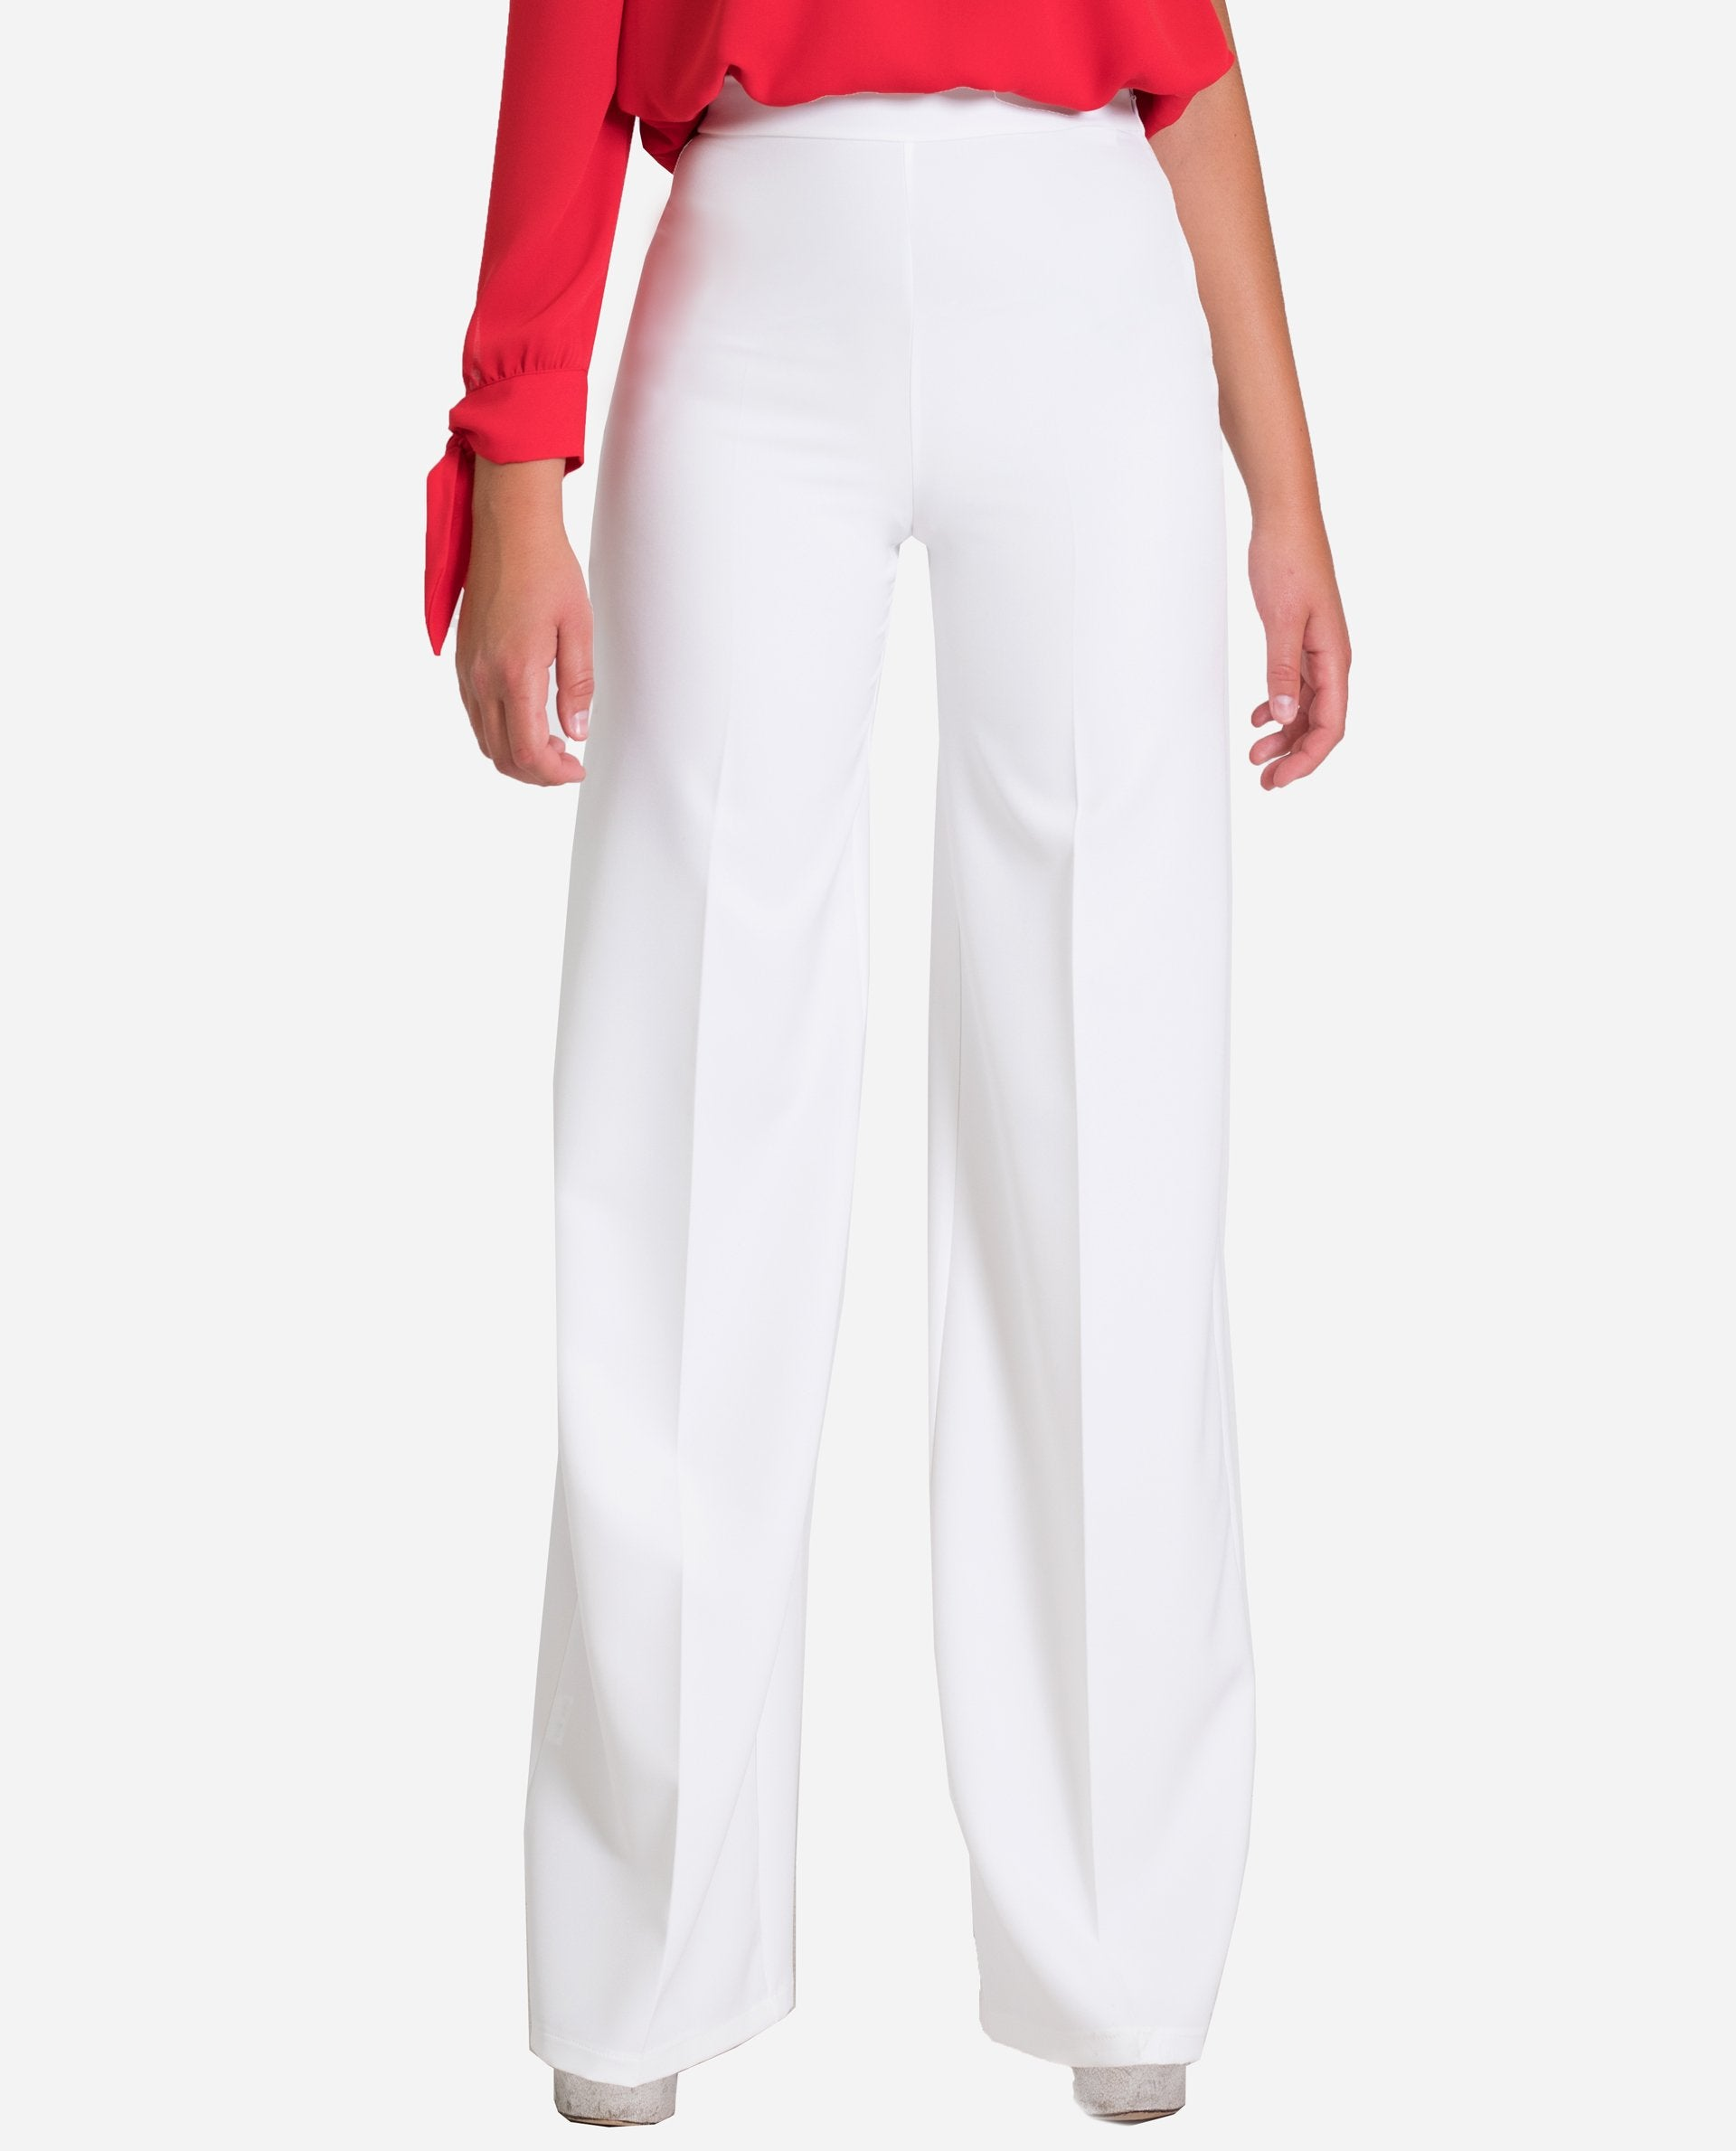 White Palazzo Pants Tall Rubber Waist The Are